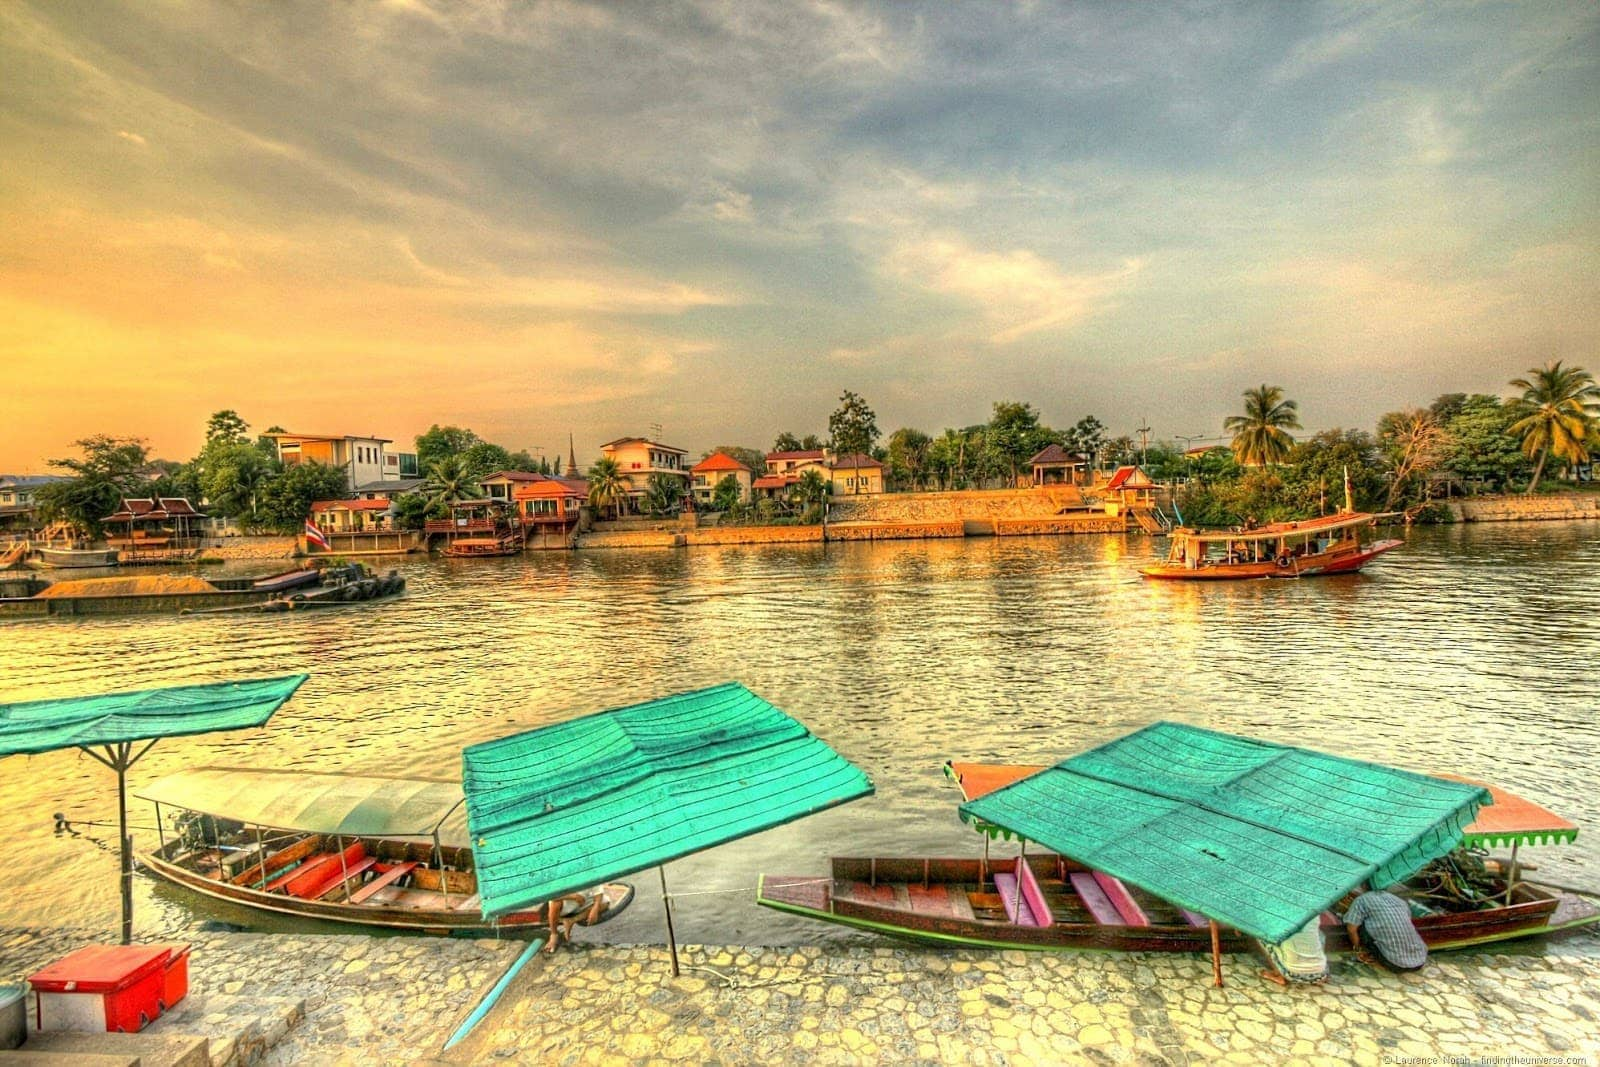 Boats on Chao Phraya River at sunset